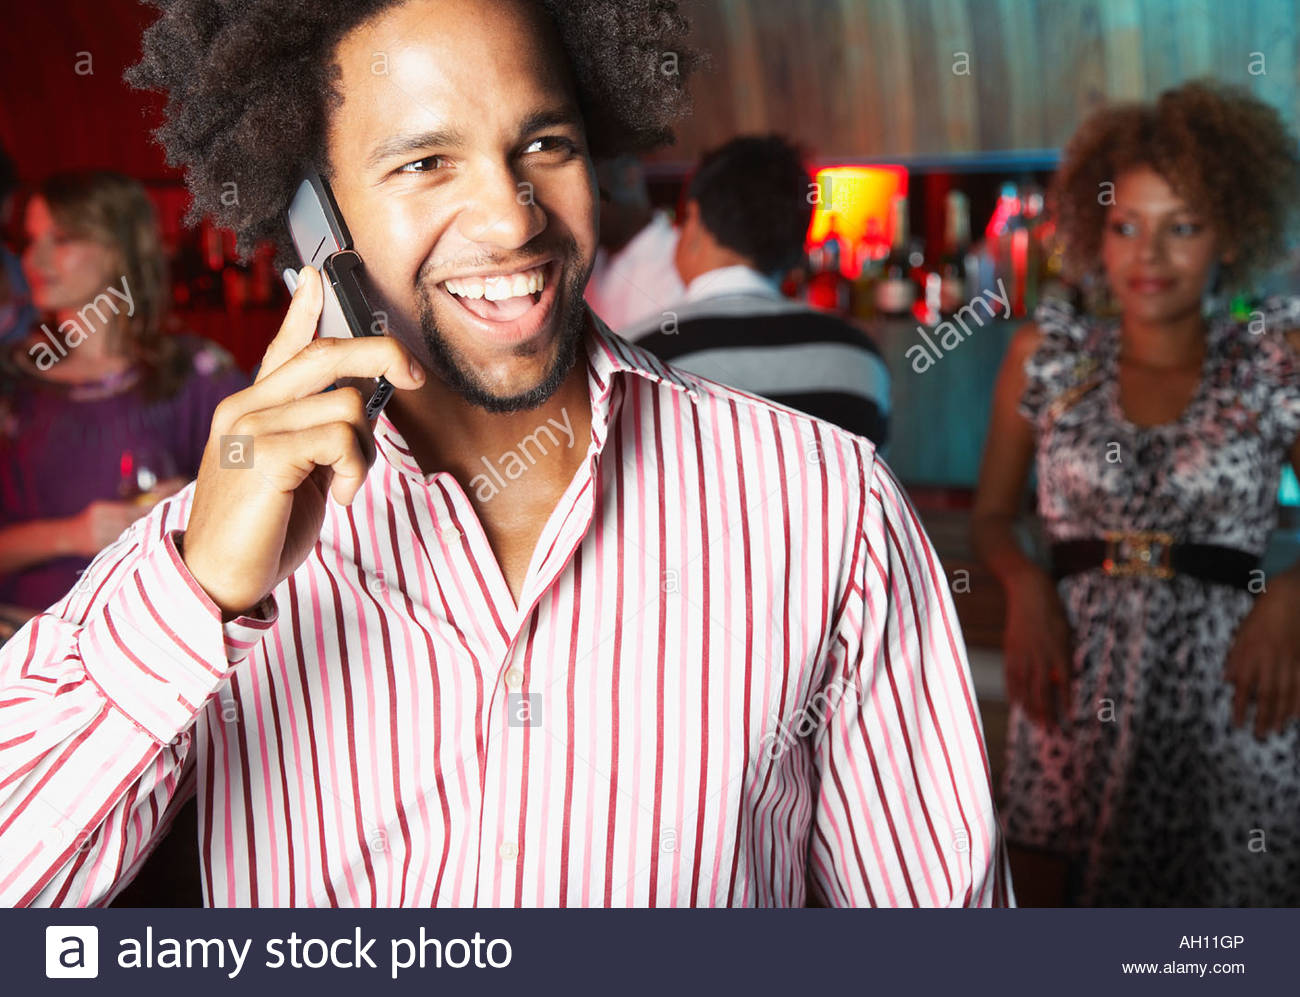 A man at a bar on his cellular phone - Stock Image